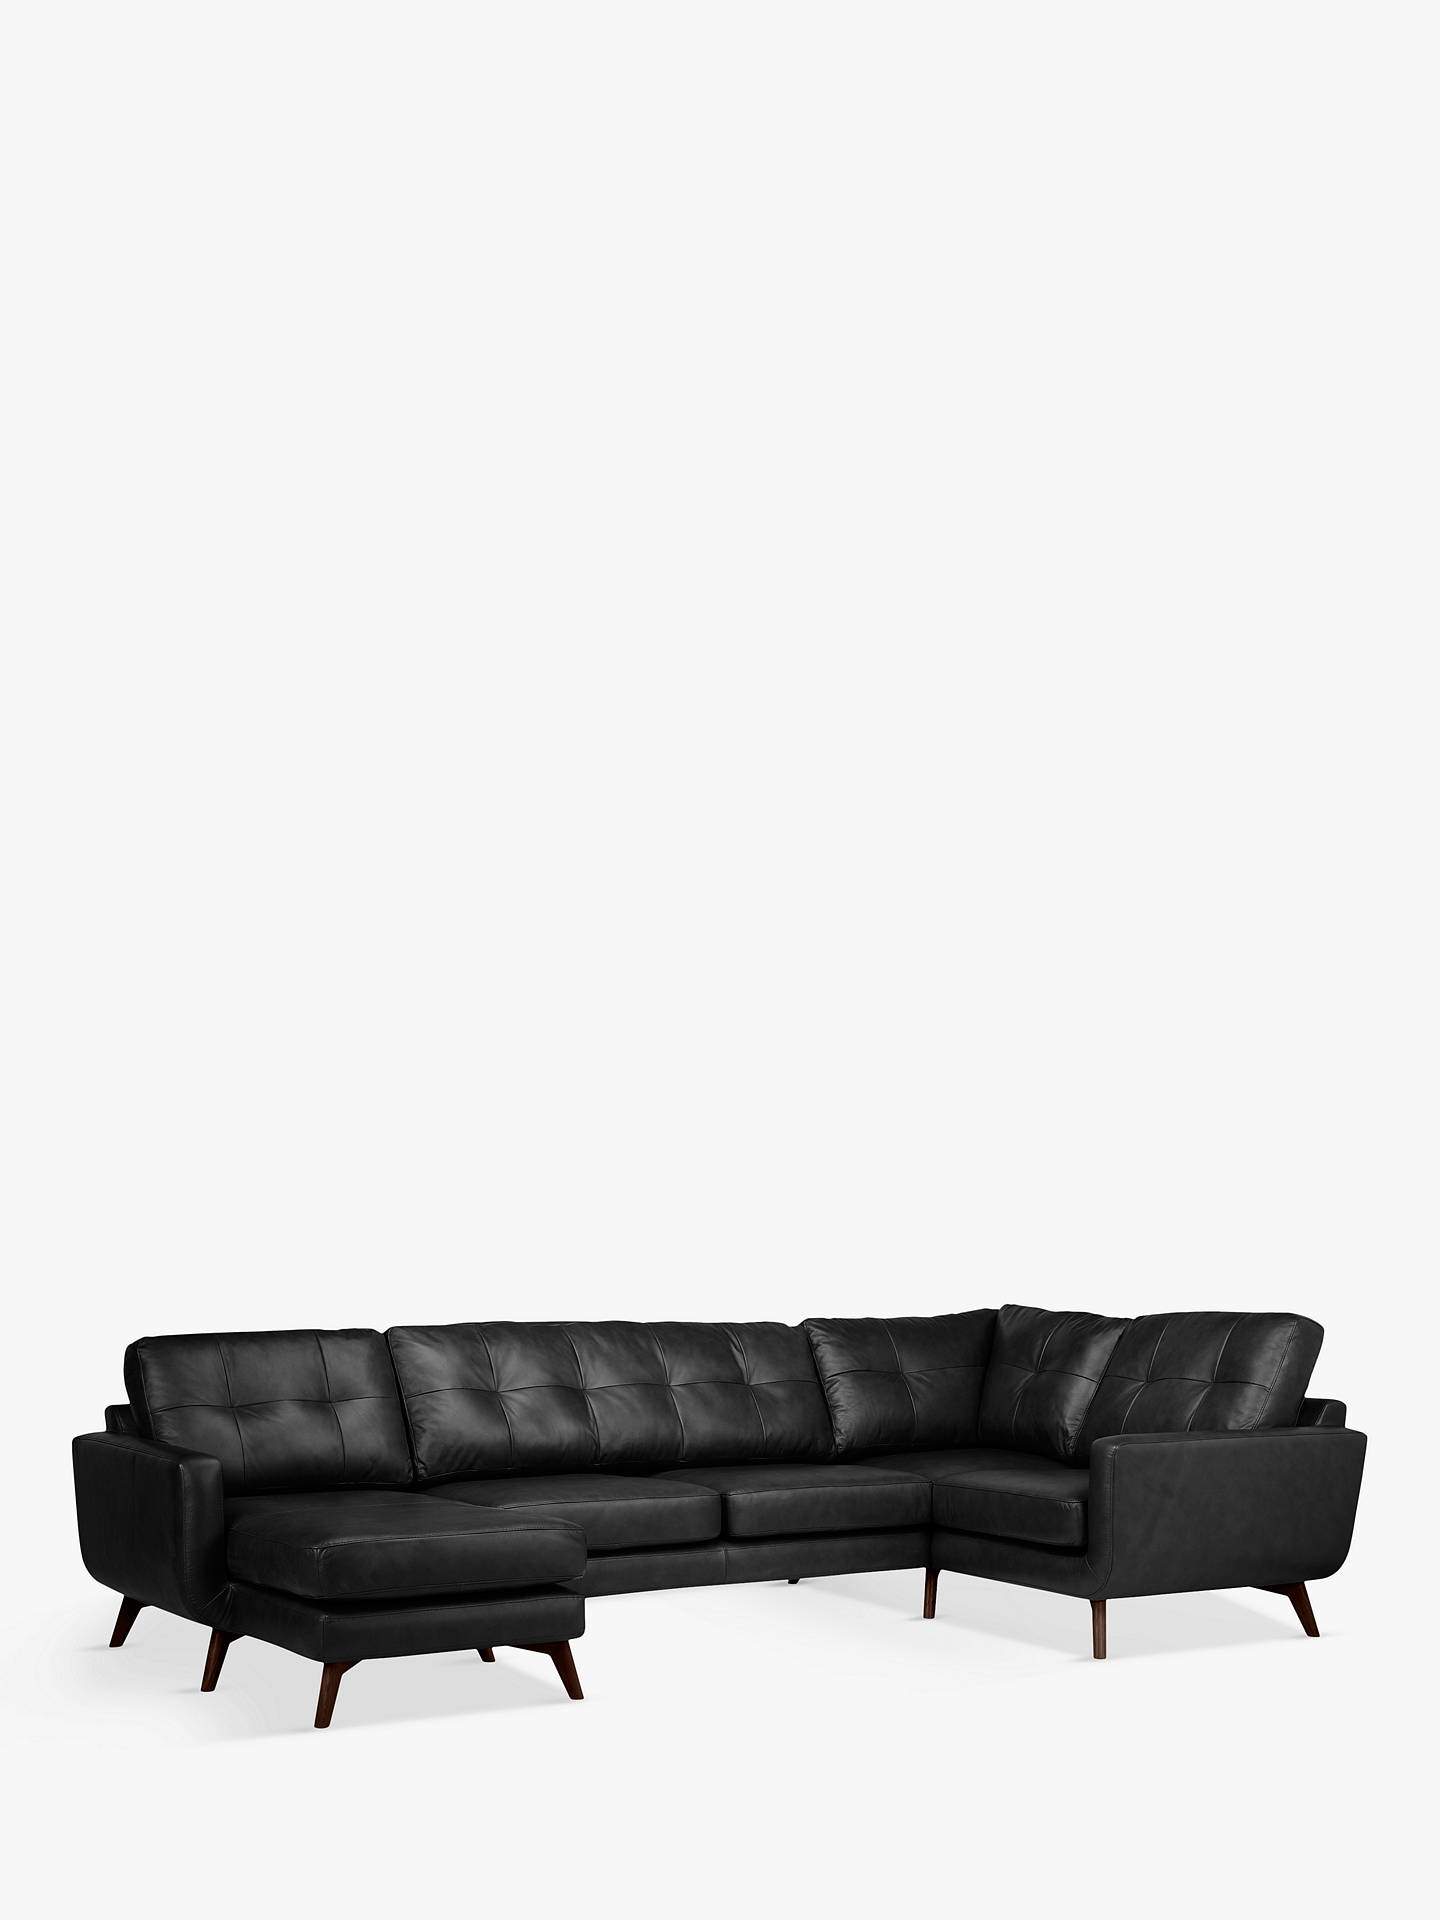 Buy John Lewis & Partners Barbican Leather LHF Medium Corner Chaise End Sofa, Dark Leg, Contempo Black Online at johnlewis.com